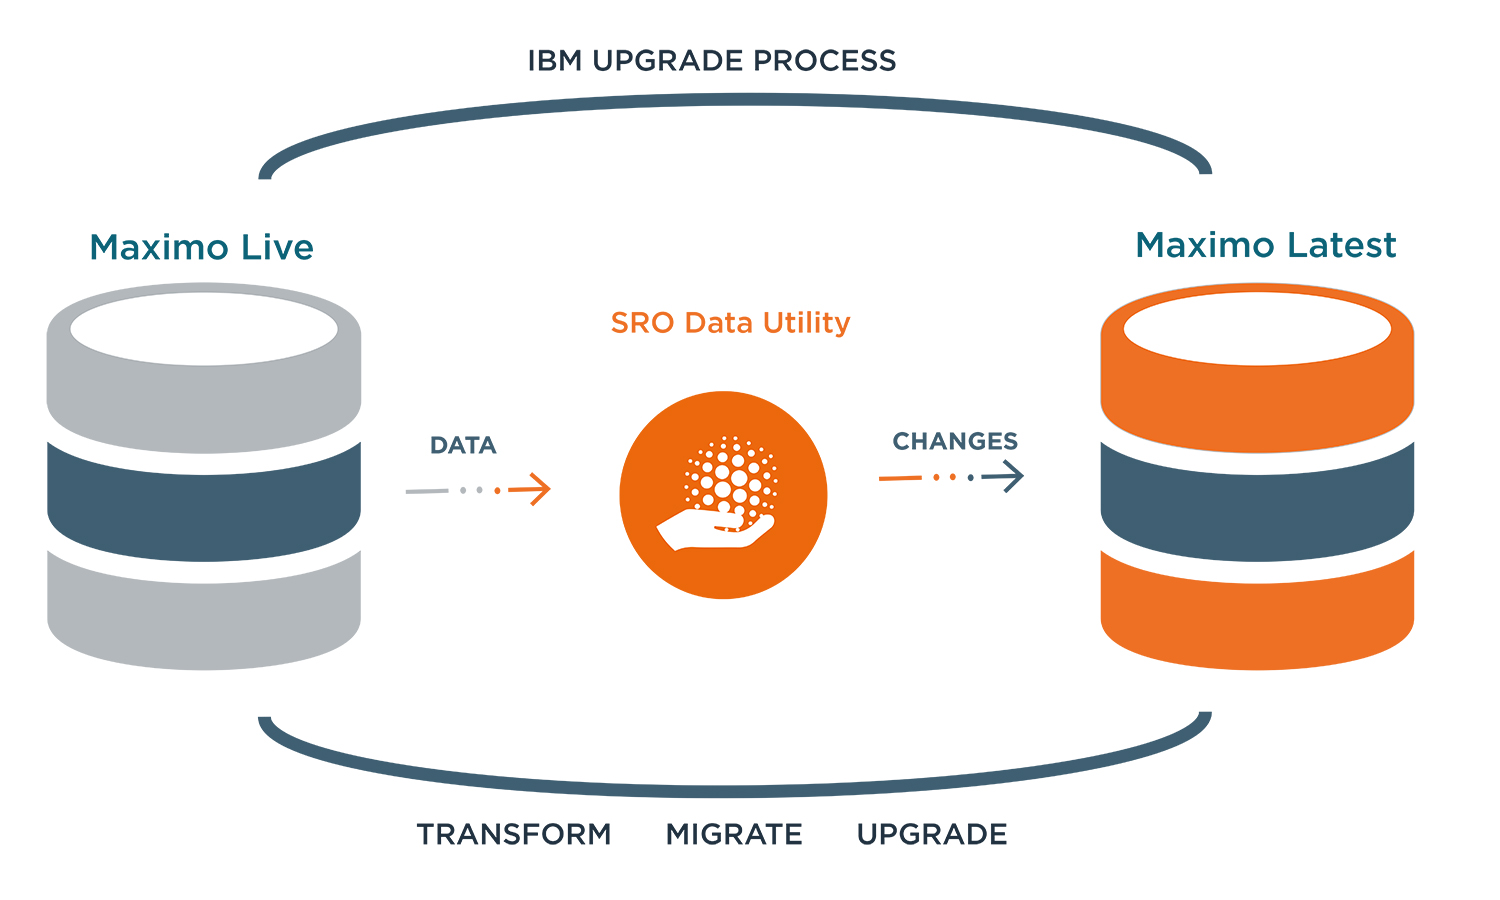 SDU Data migrations and upgrades